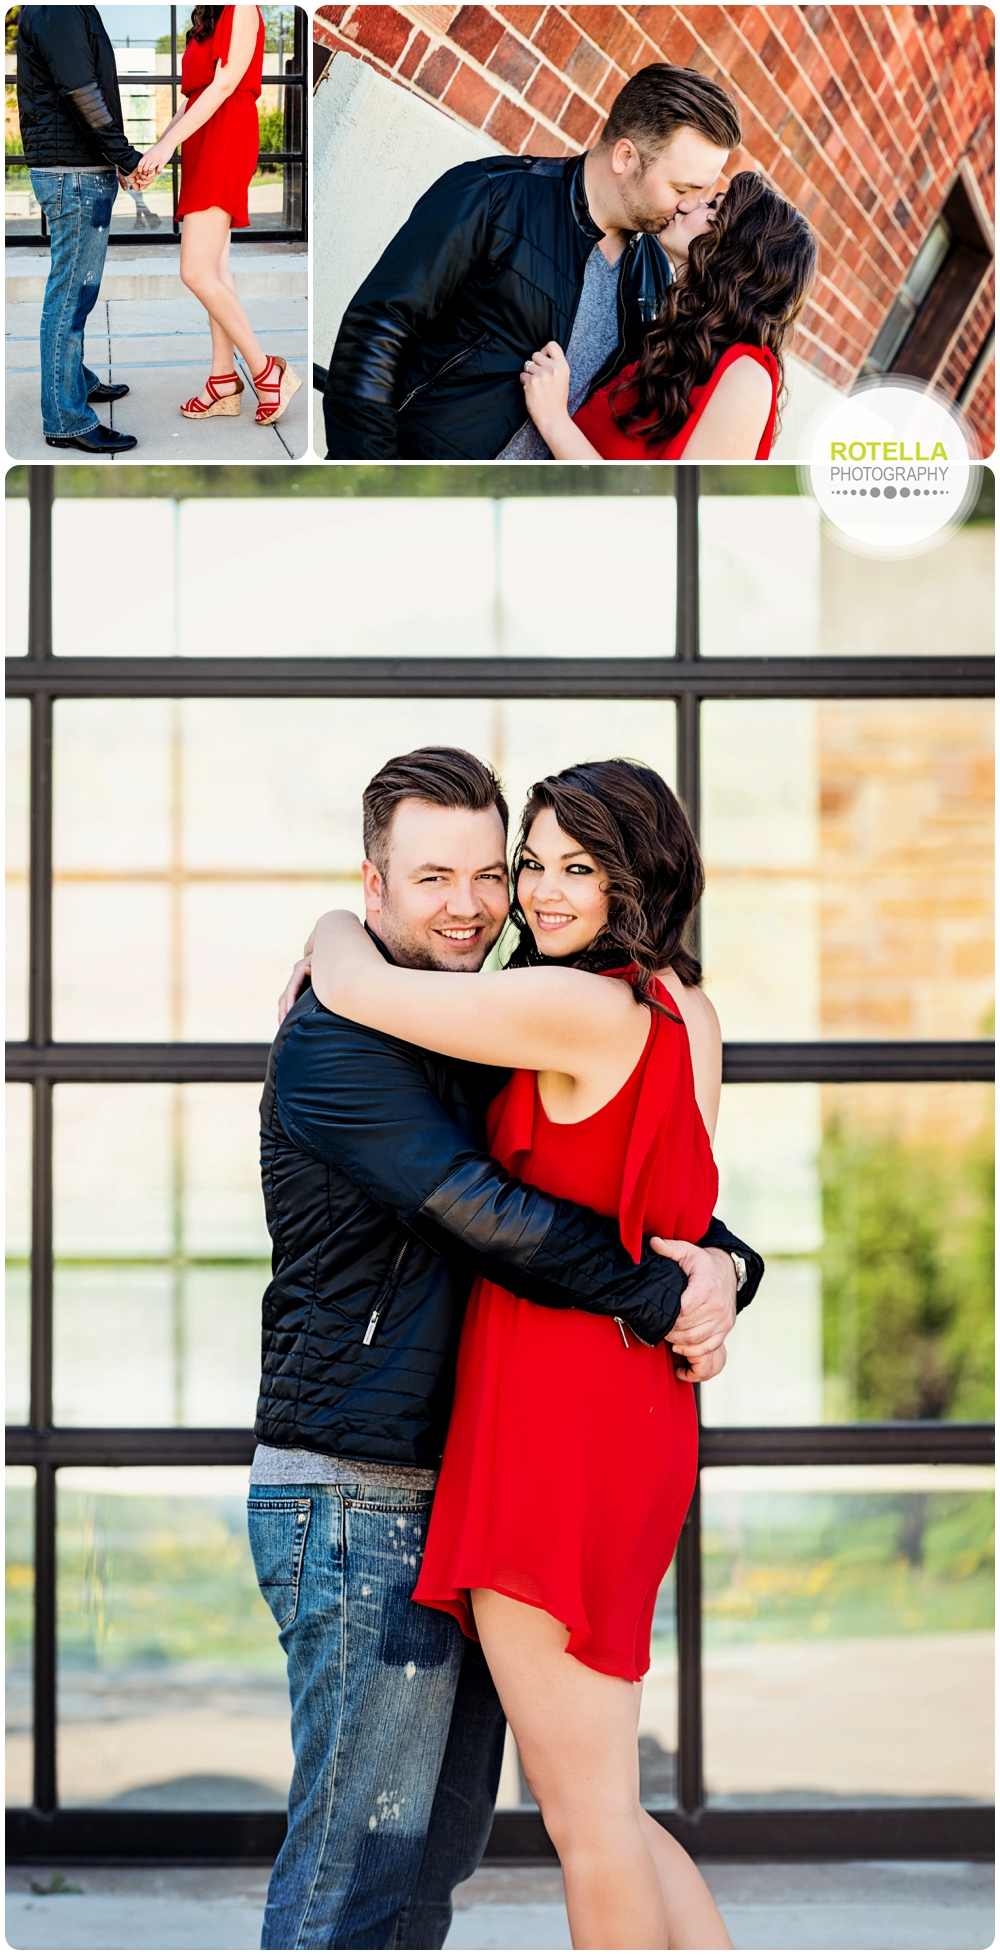 MELANIE-DEREK-MINNESOTA-ENGAGEMENT-PHOTOGRAPHY-ROTELLA-PHOTOGRAPHY_06